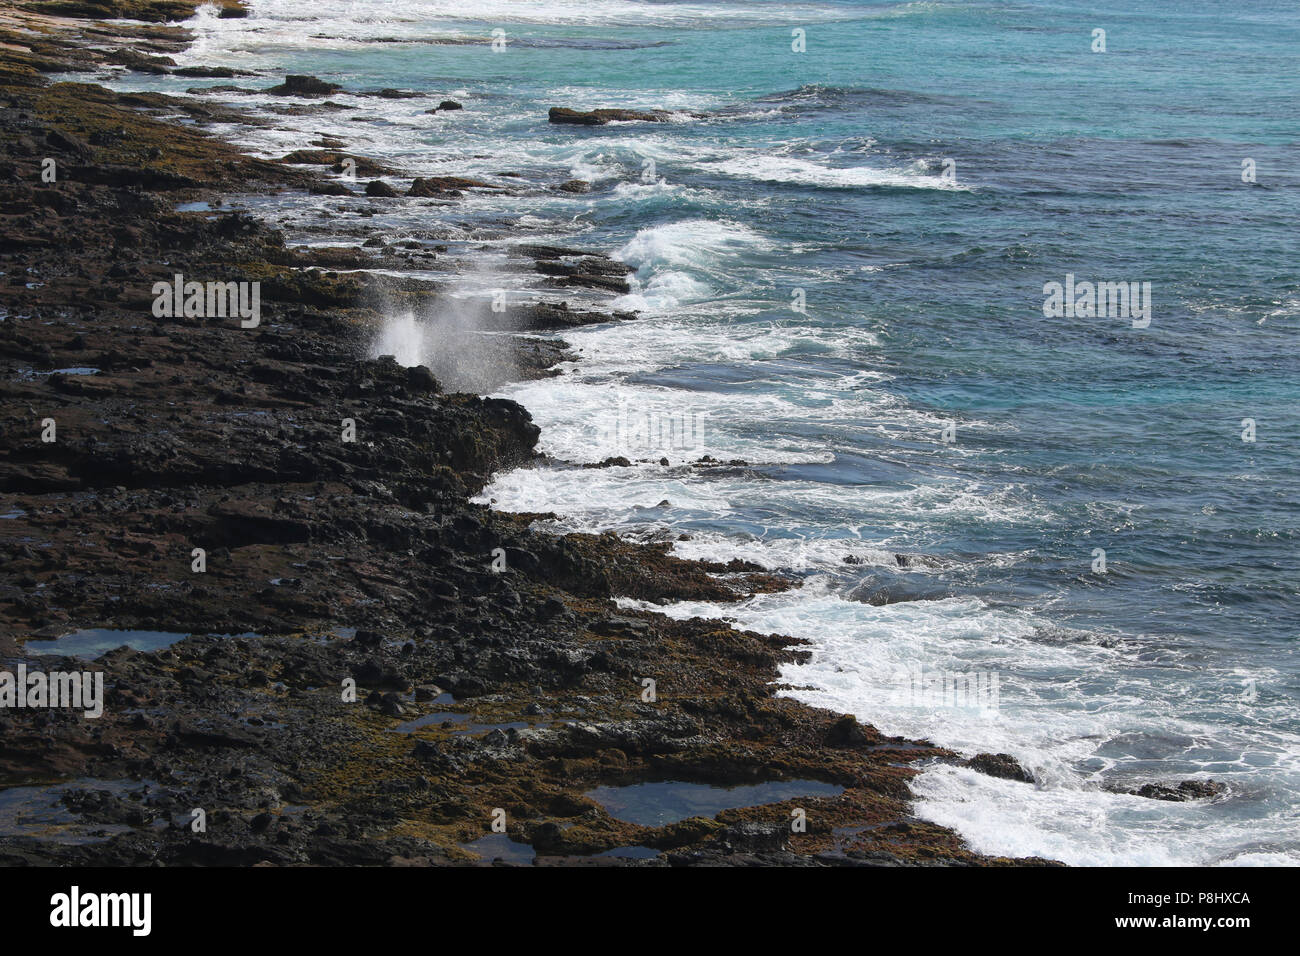 Volcanic rock shoreline as viewed from the Halona Hole Lookout. Oahu Island, Hawaii, USA. - Stock Image